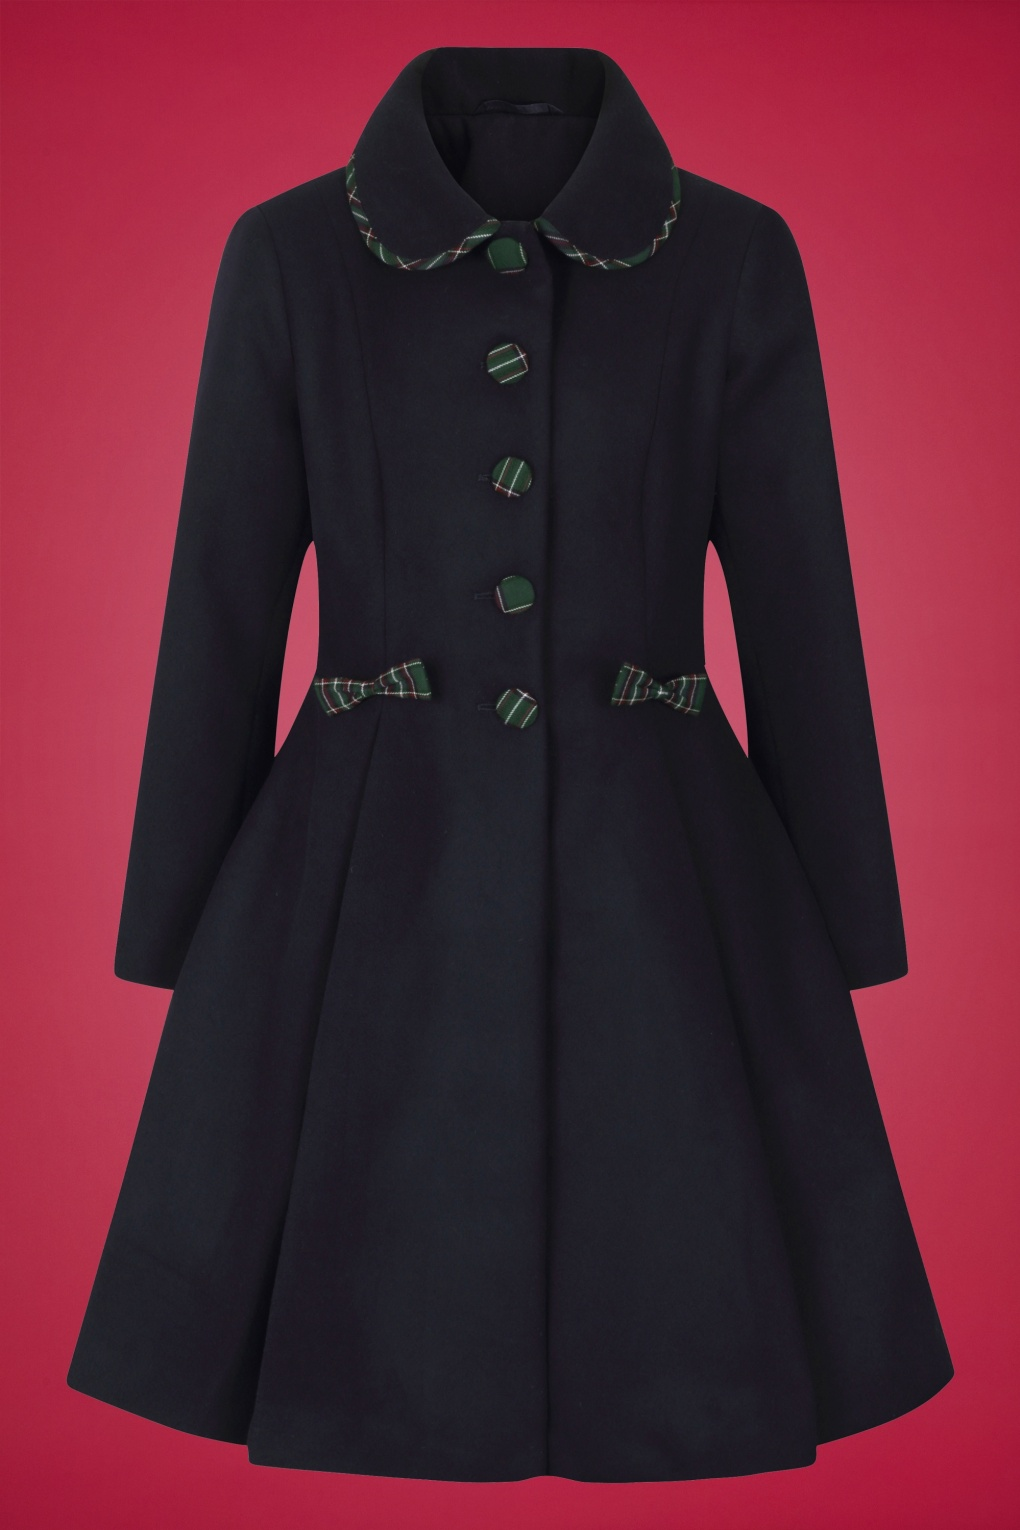 1950s Jackets, Coats, Bolero | Swing, Pin Up, Rockabilly 50s Tiddlywinks Coat in Navy £104.51 AT vintagedancer.com